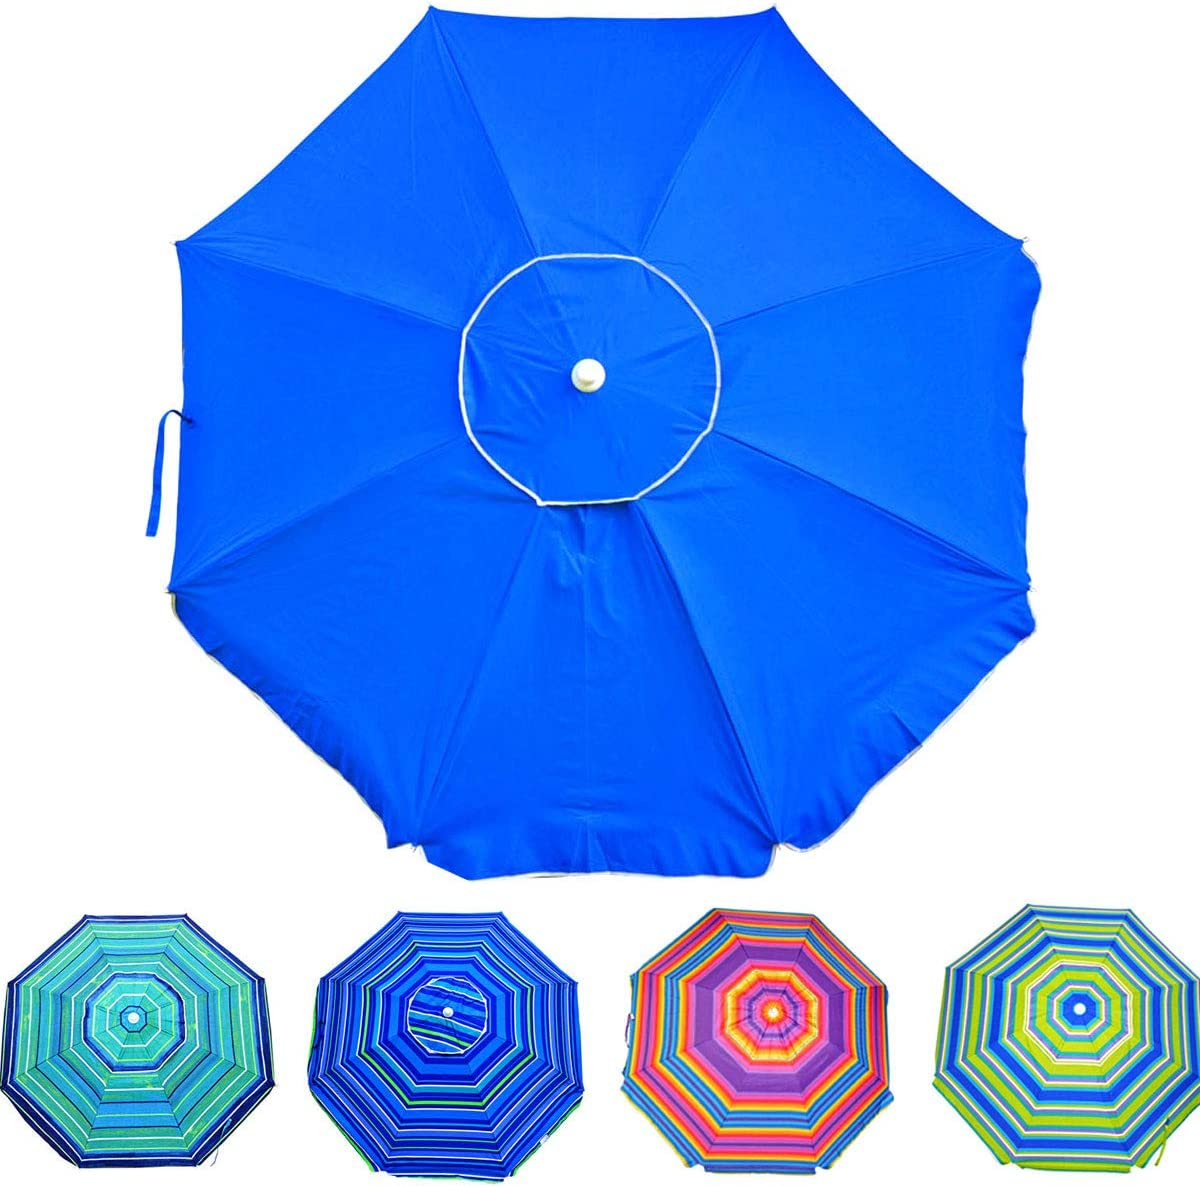 Deluxe 6.5 ft Beach Umbrella with Carry Bag, Steel Pole, Tilt, UPF 100 , Outdoor Portable Sun Shelter for Sand